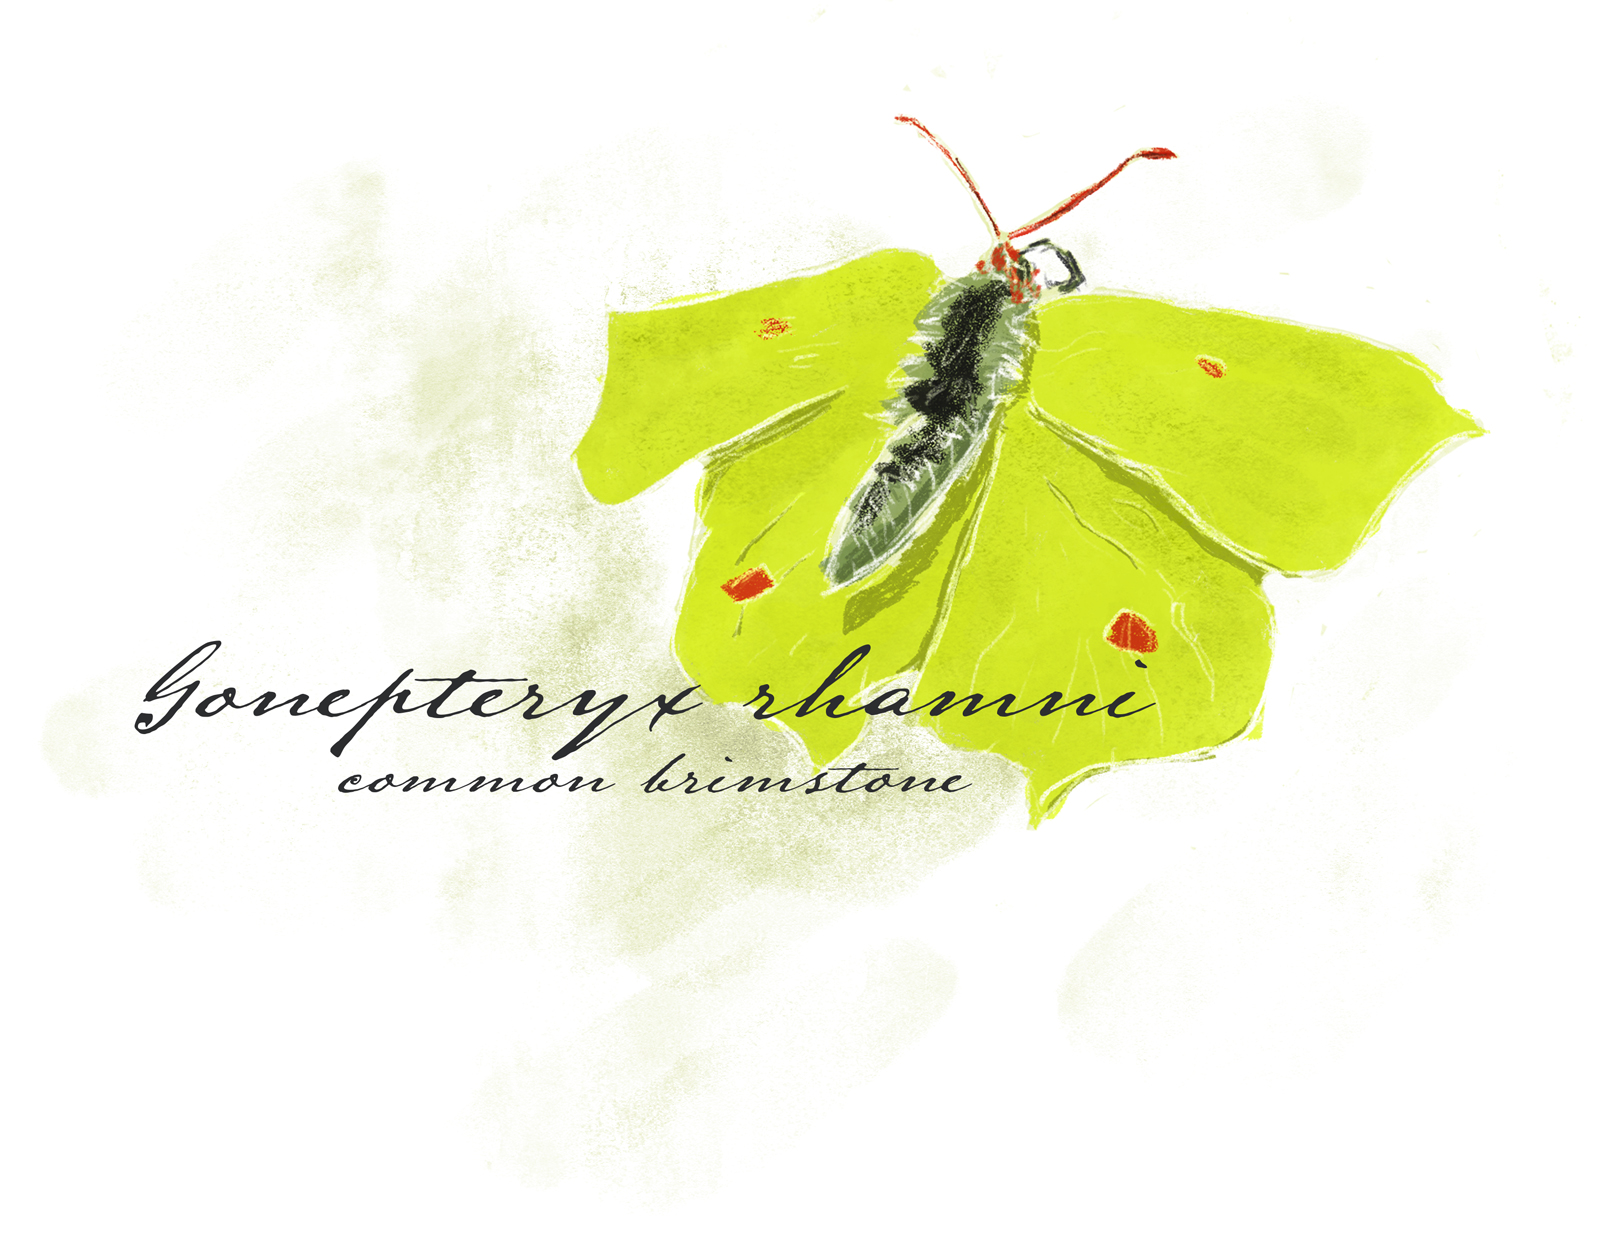 painting of a common brimstone butterfly